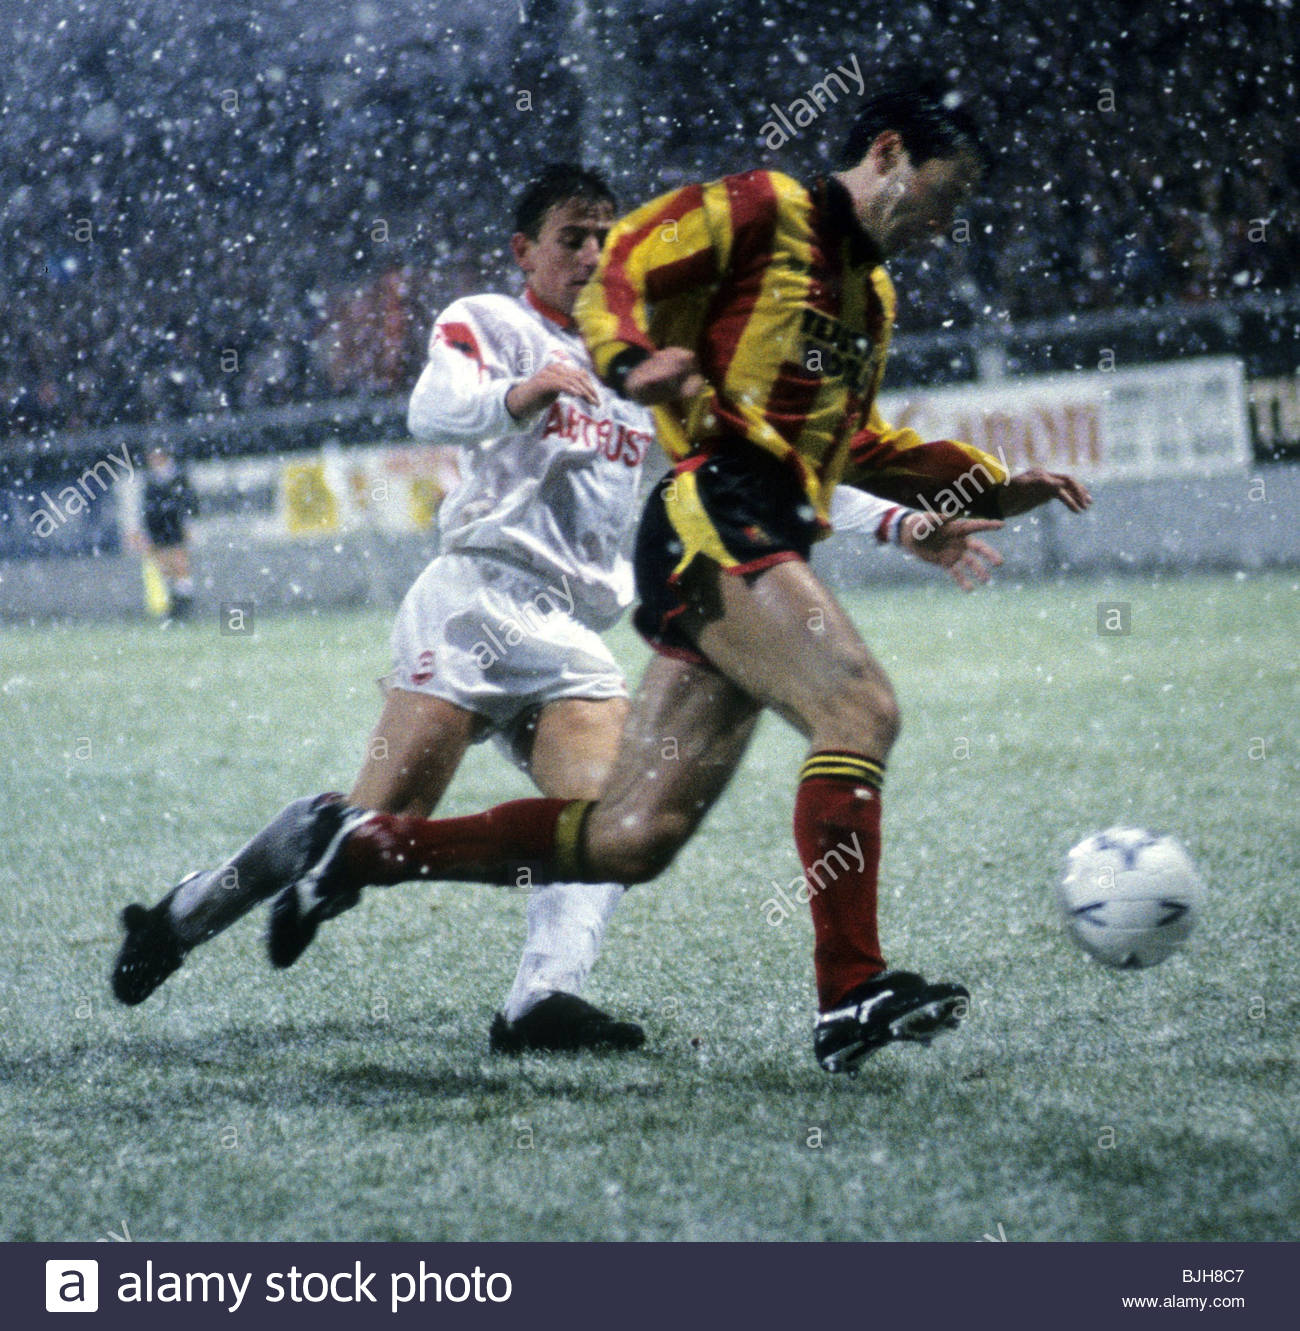 21/11/92 PARTICK THISTLE V ABERDEEN 0-2) FIR HILL - GLASGOW Aberdeen's Paul Mason (left) pursues David Irons - Stock Image